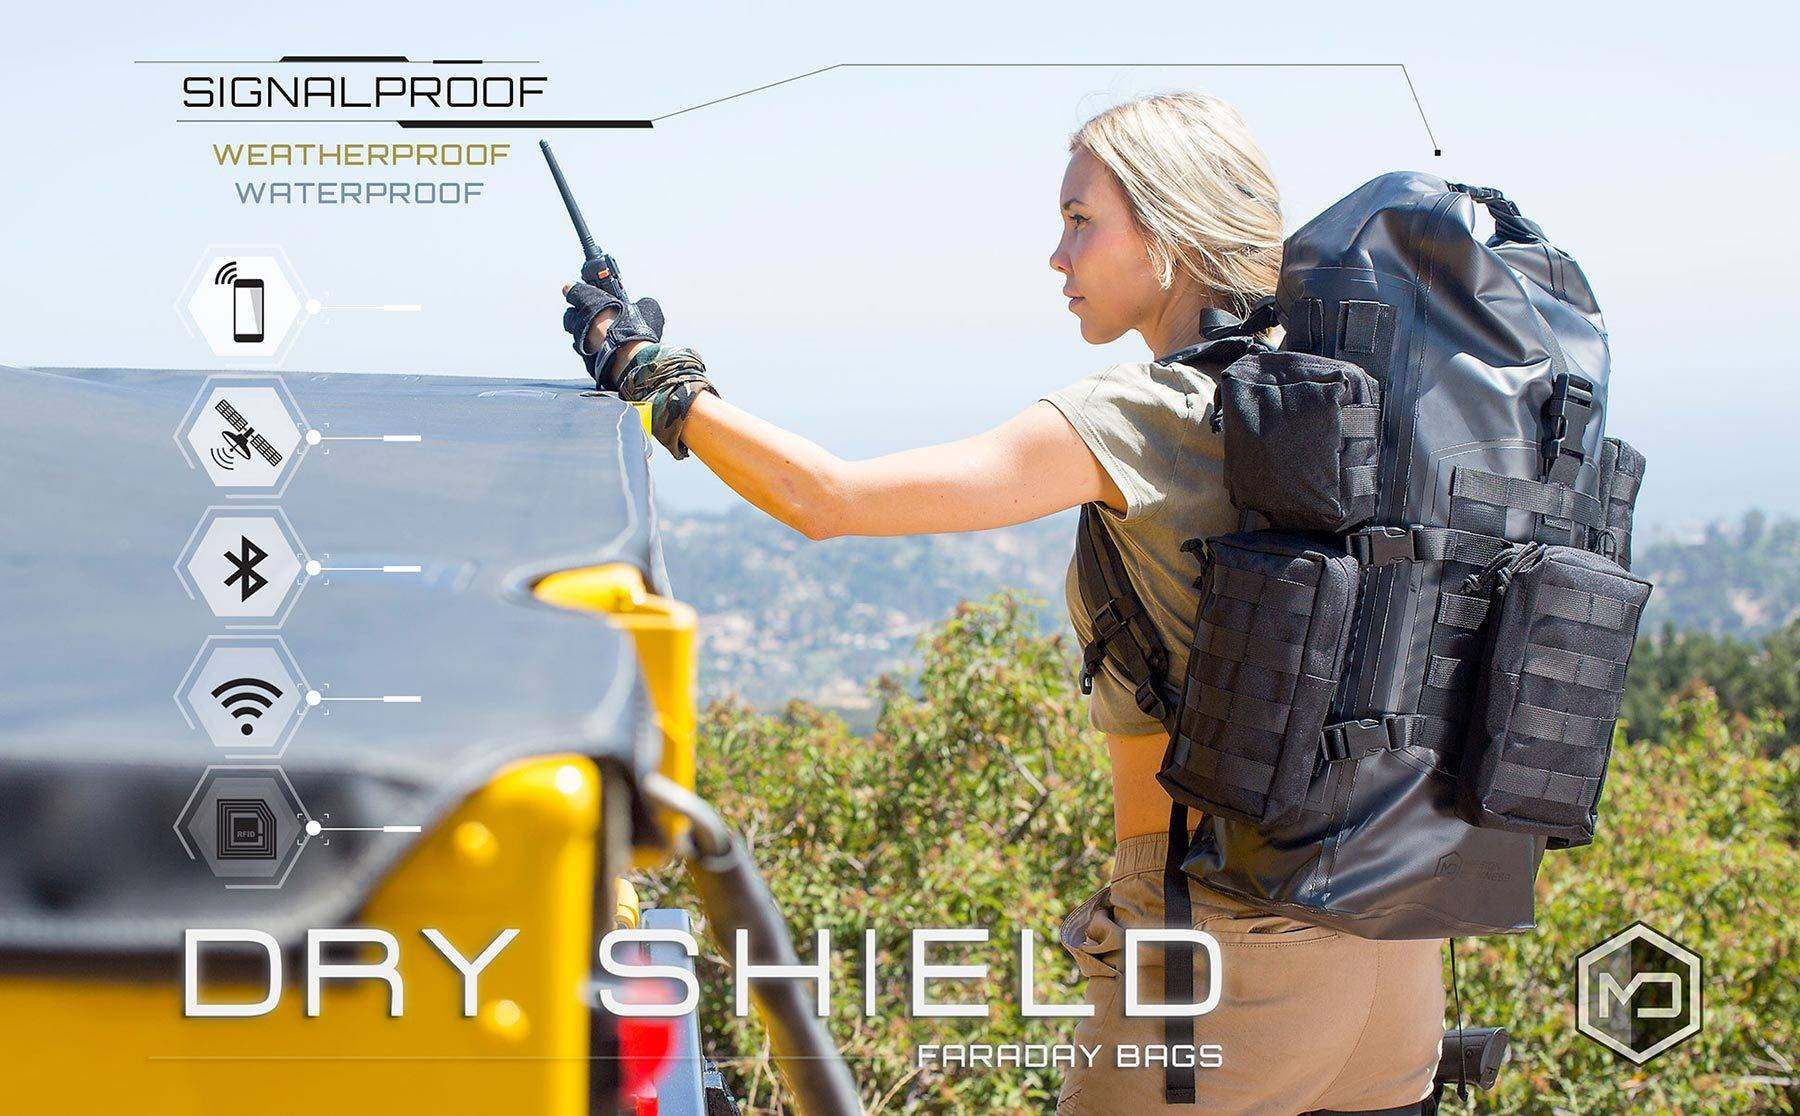 Mission Darkness™ Dry Shield Faraday Bags are weatherproof, waterproof, signalproof